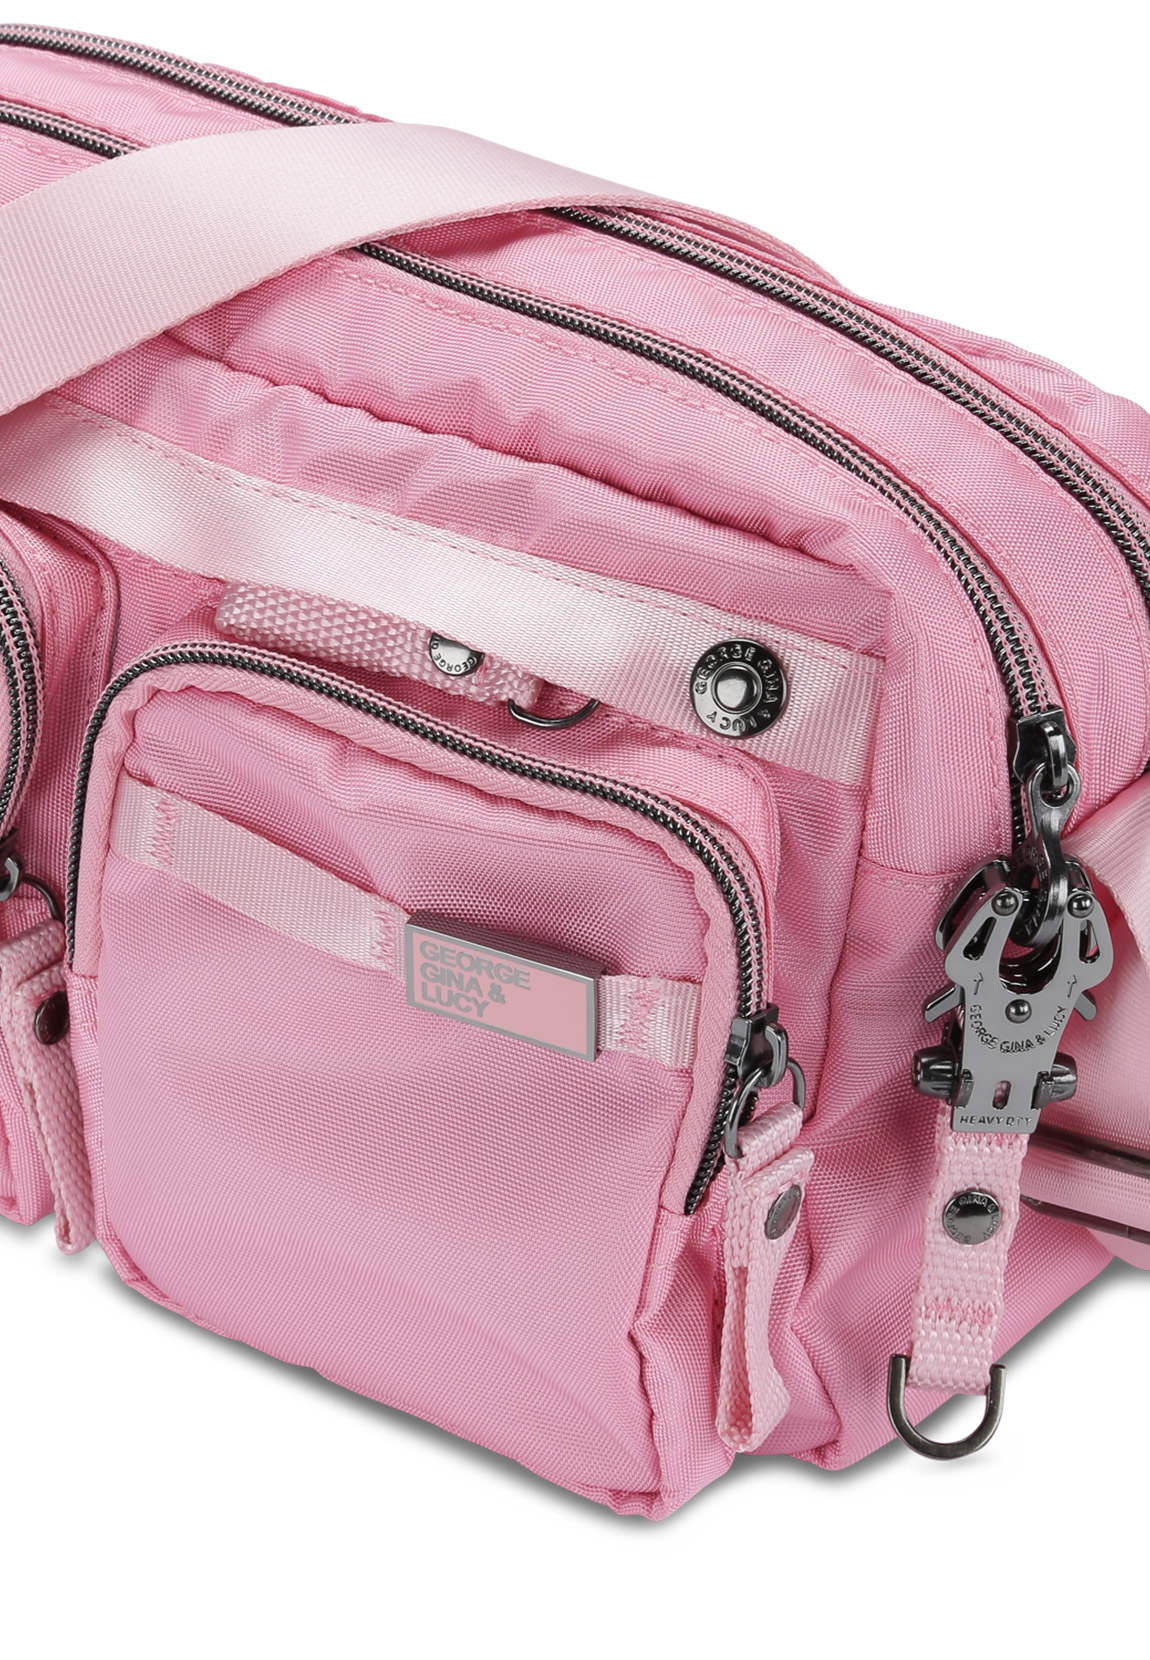 Tasche LUNCH DATE rosaly 520 Rosa George Gina Lucy Xvb6P